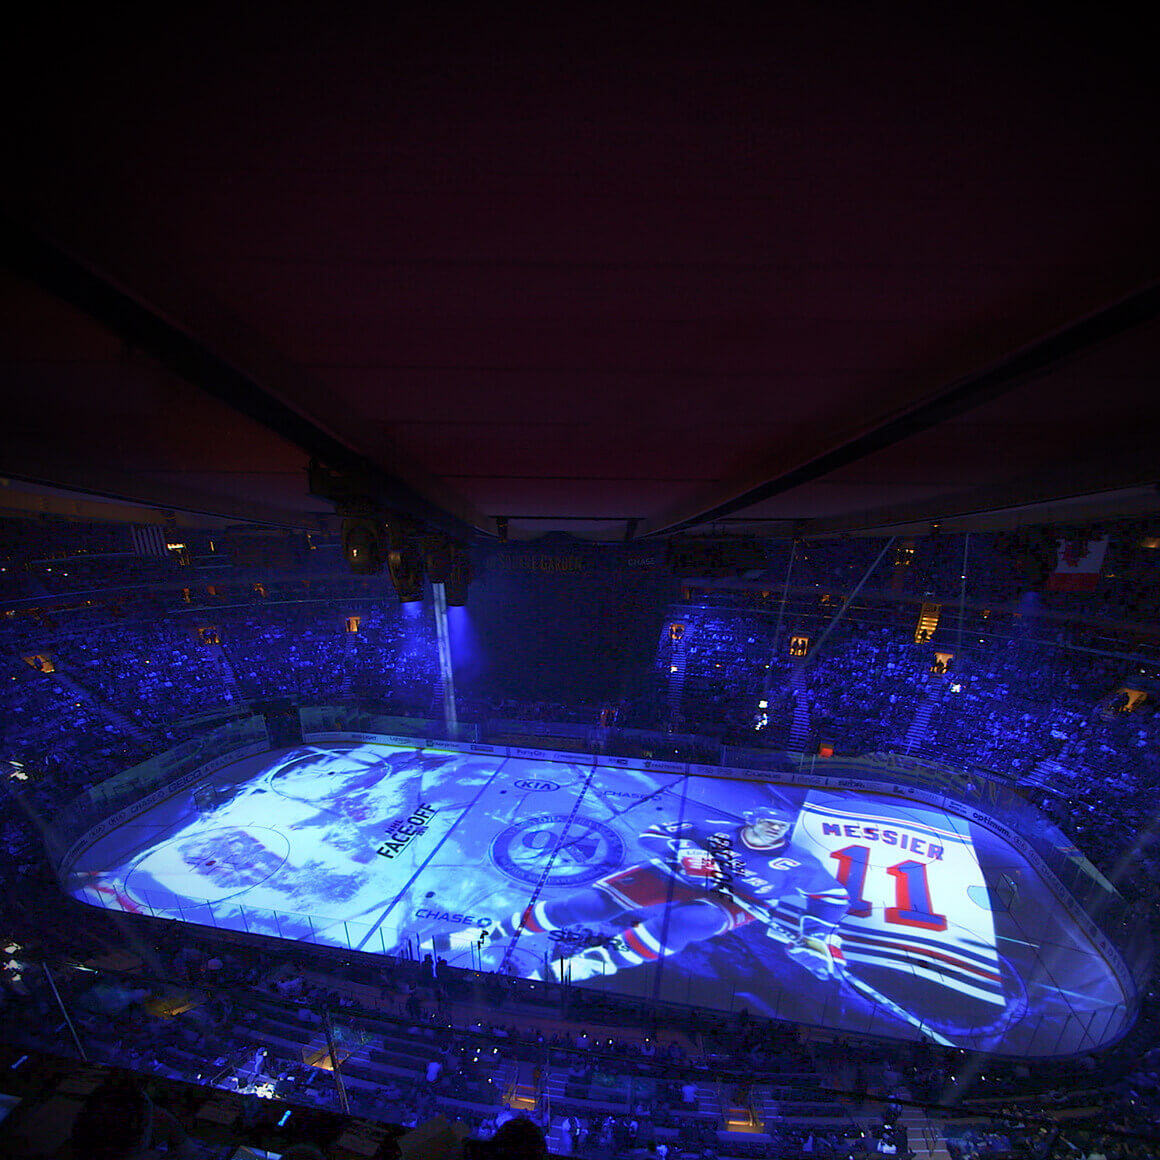 Madison Square Garden Rangers Projection Mapping 2016/17